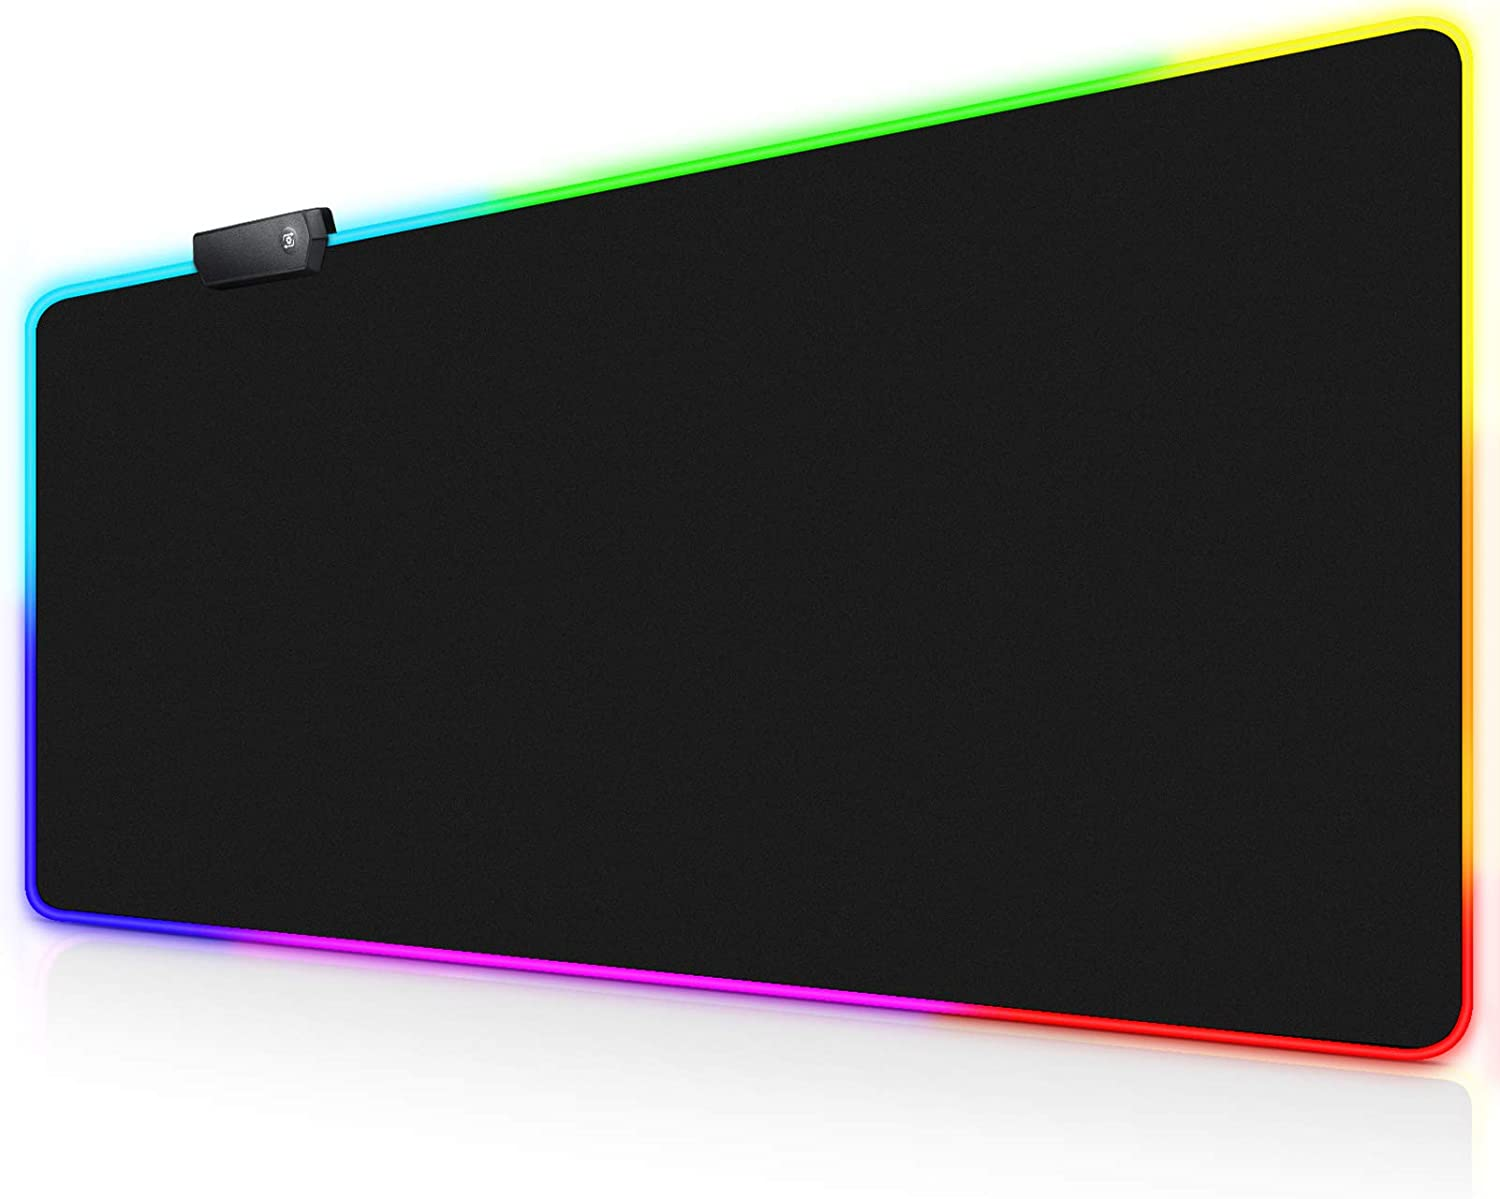 GGLTECK RGB Gaming Mouse Pad, XXL/Extended Mat Desk Pad 32